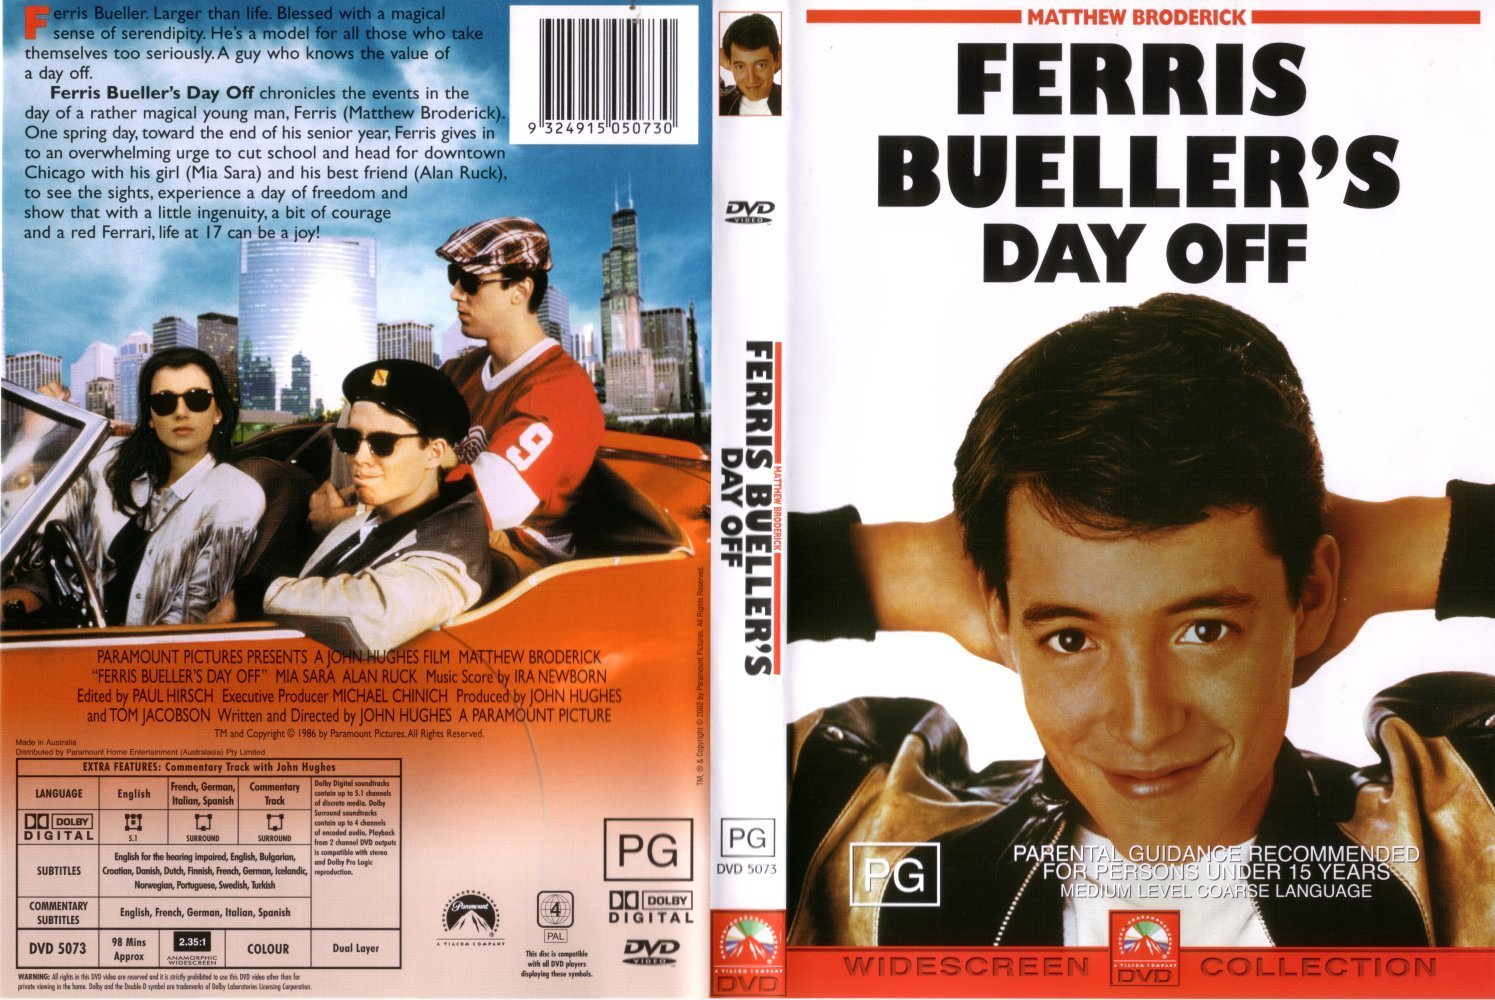 an analysis of ferris buellers day off in the summer of 1986 Ferris bueller's day off feels like the grand finale after sixteen candles (1984), weird science (1985), the breakfast club (1985) and pretty in pink (1986), marking the end of the teenage innocence before hughes moved onto planes, trains and automobiles (1987), christmas vacation (1989) and home alone (1990.